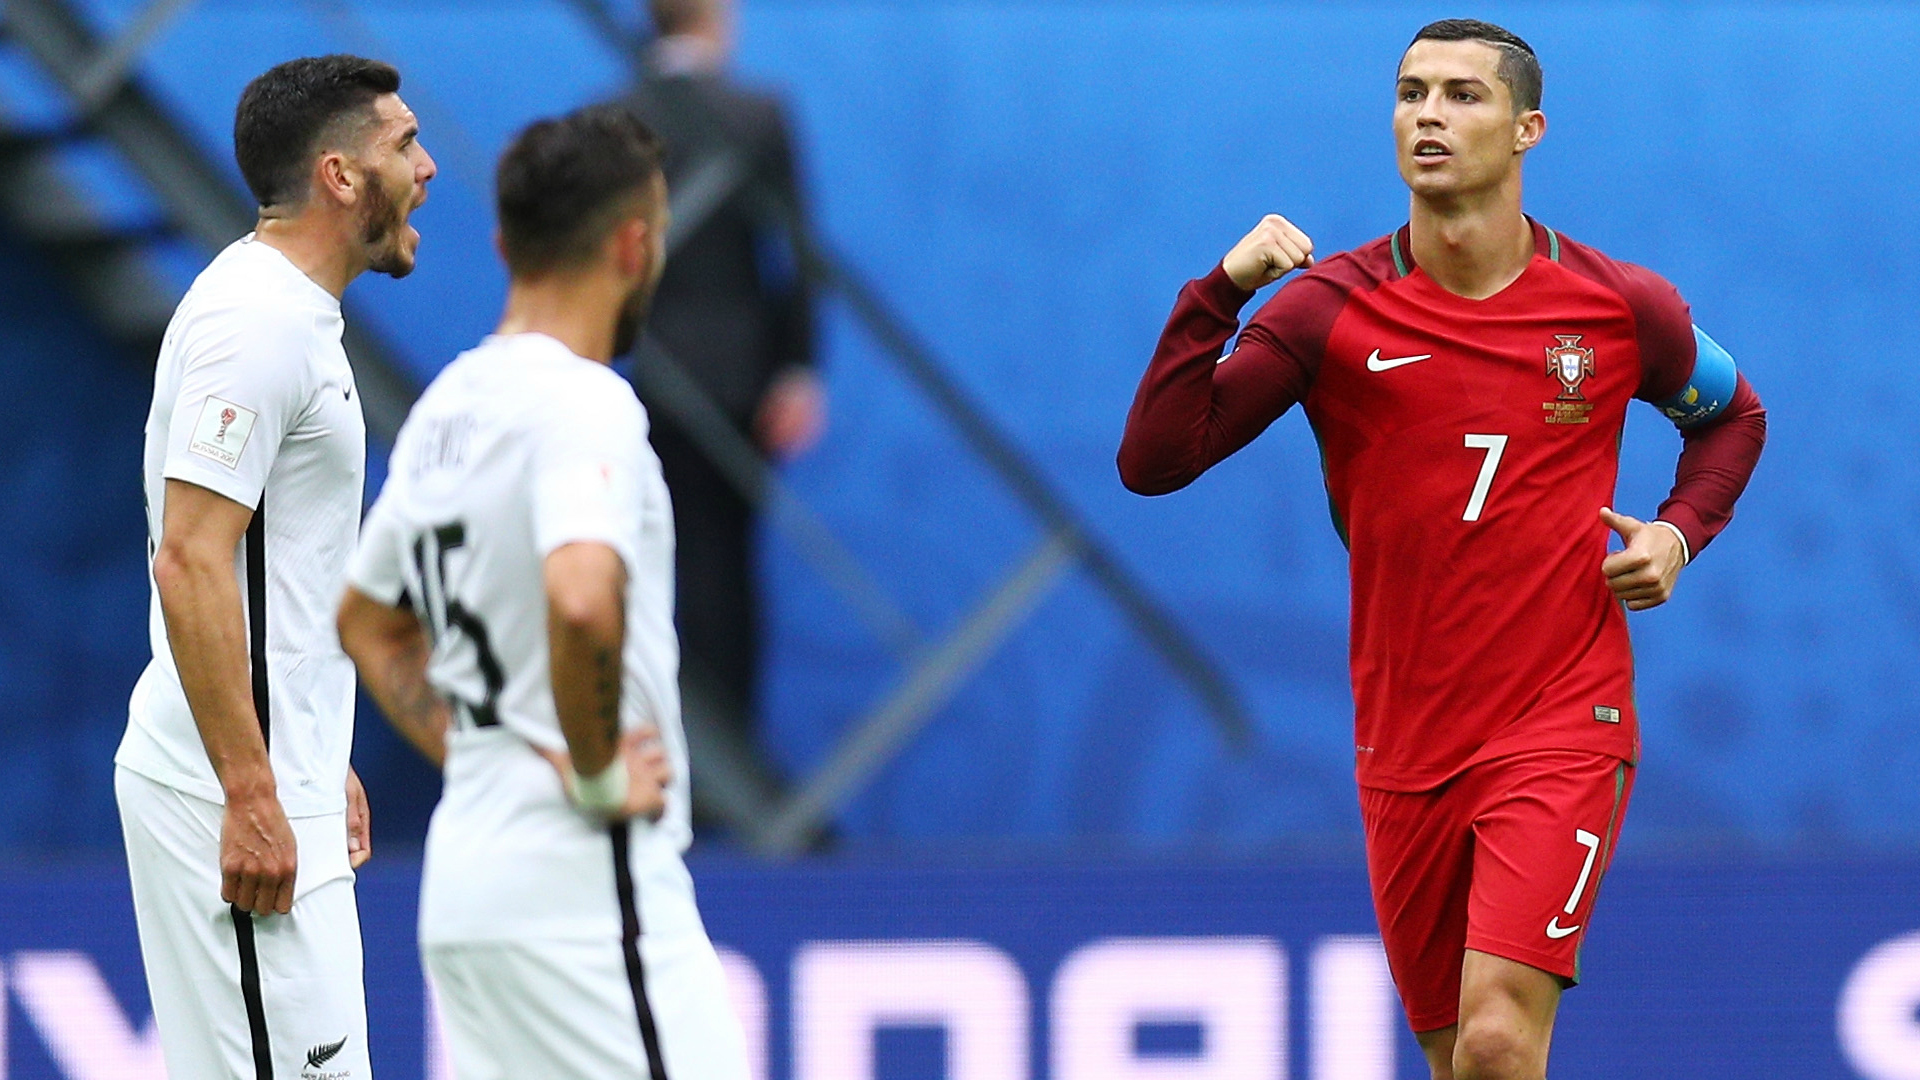 Portugal New Zealand Cristiano Ronaldo Confederations Cup